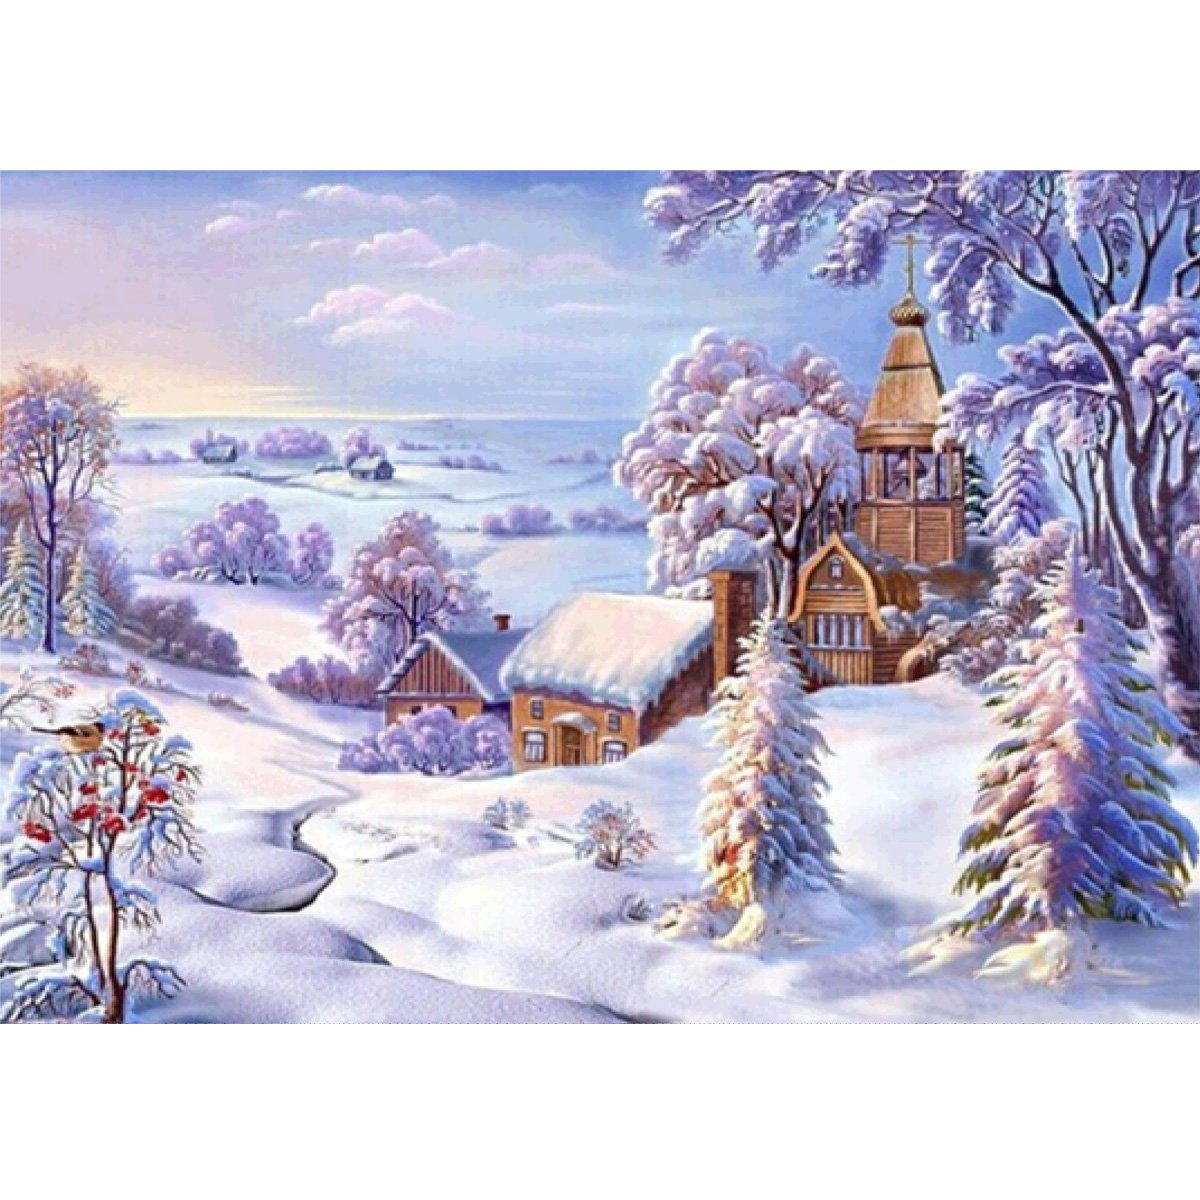 DIY 5D Diamond Painting by Number Kits Full Round Drill Rhinestone Cross Stitch Picture Craft for Home Wall Decor 12x16In Snow Cabin MXJSUA